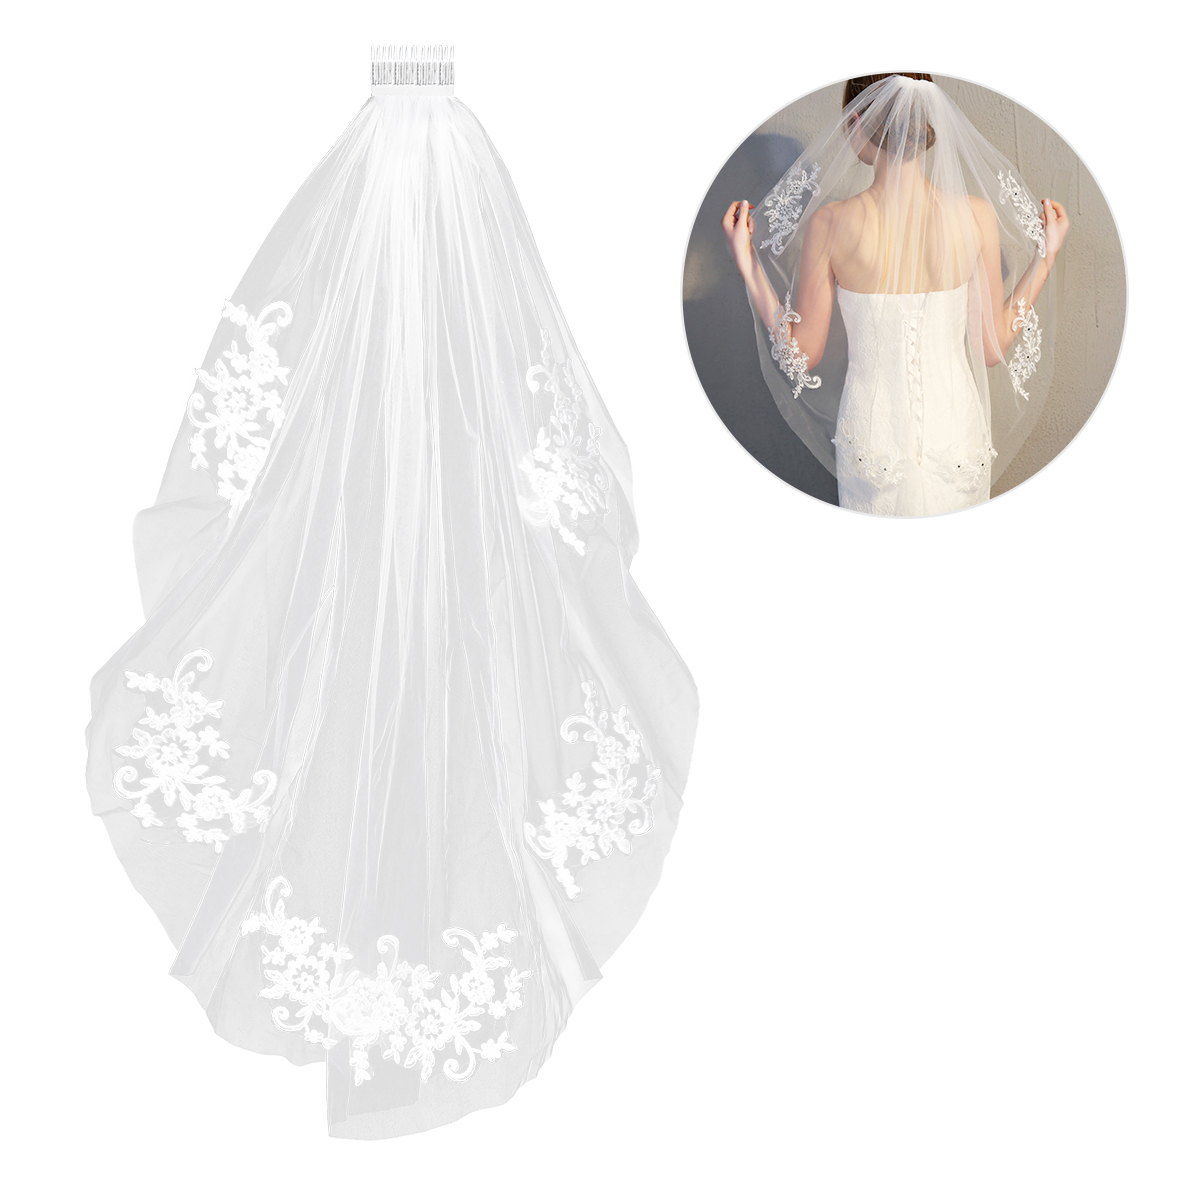 Bridal Veils Elegant Rhinestone Lace Veil Wedding Veil Hair Accessory Hearwear Heardress For Baptism Wedding Communion